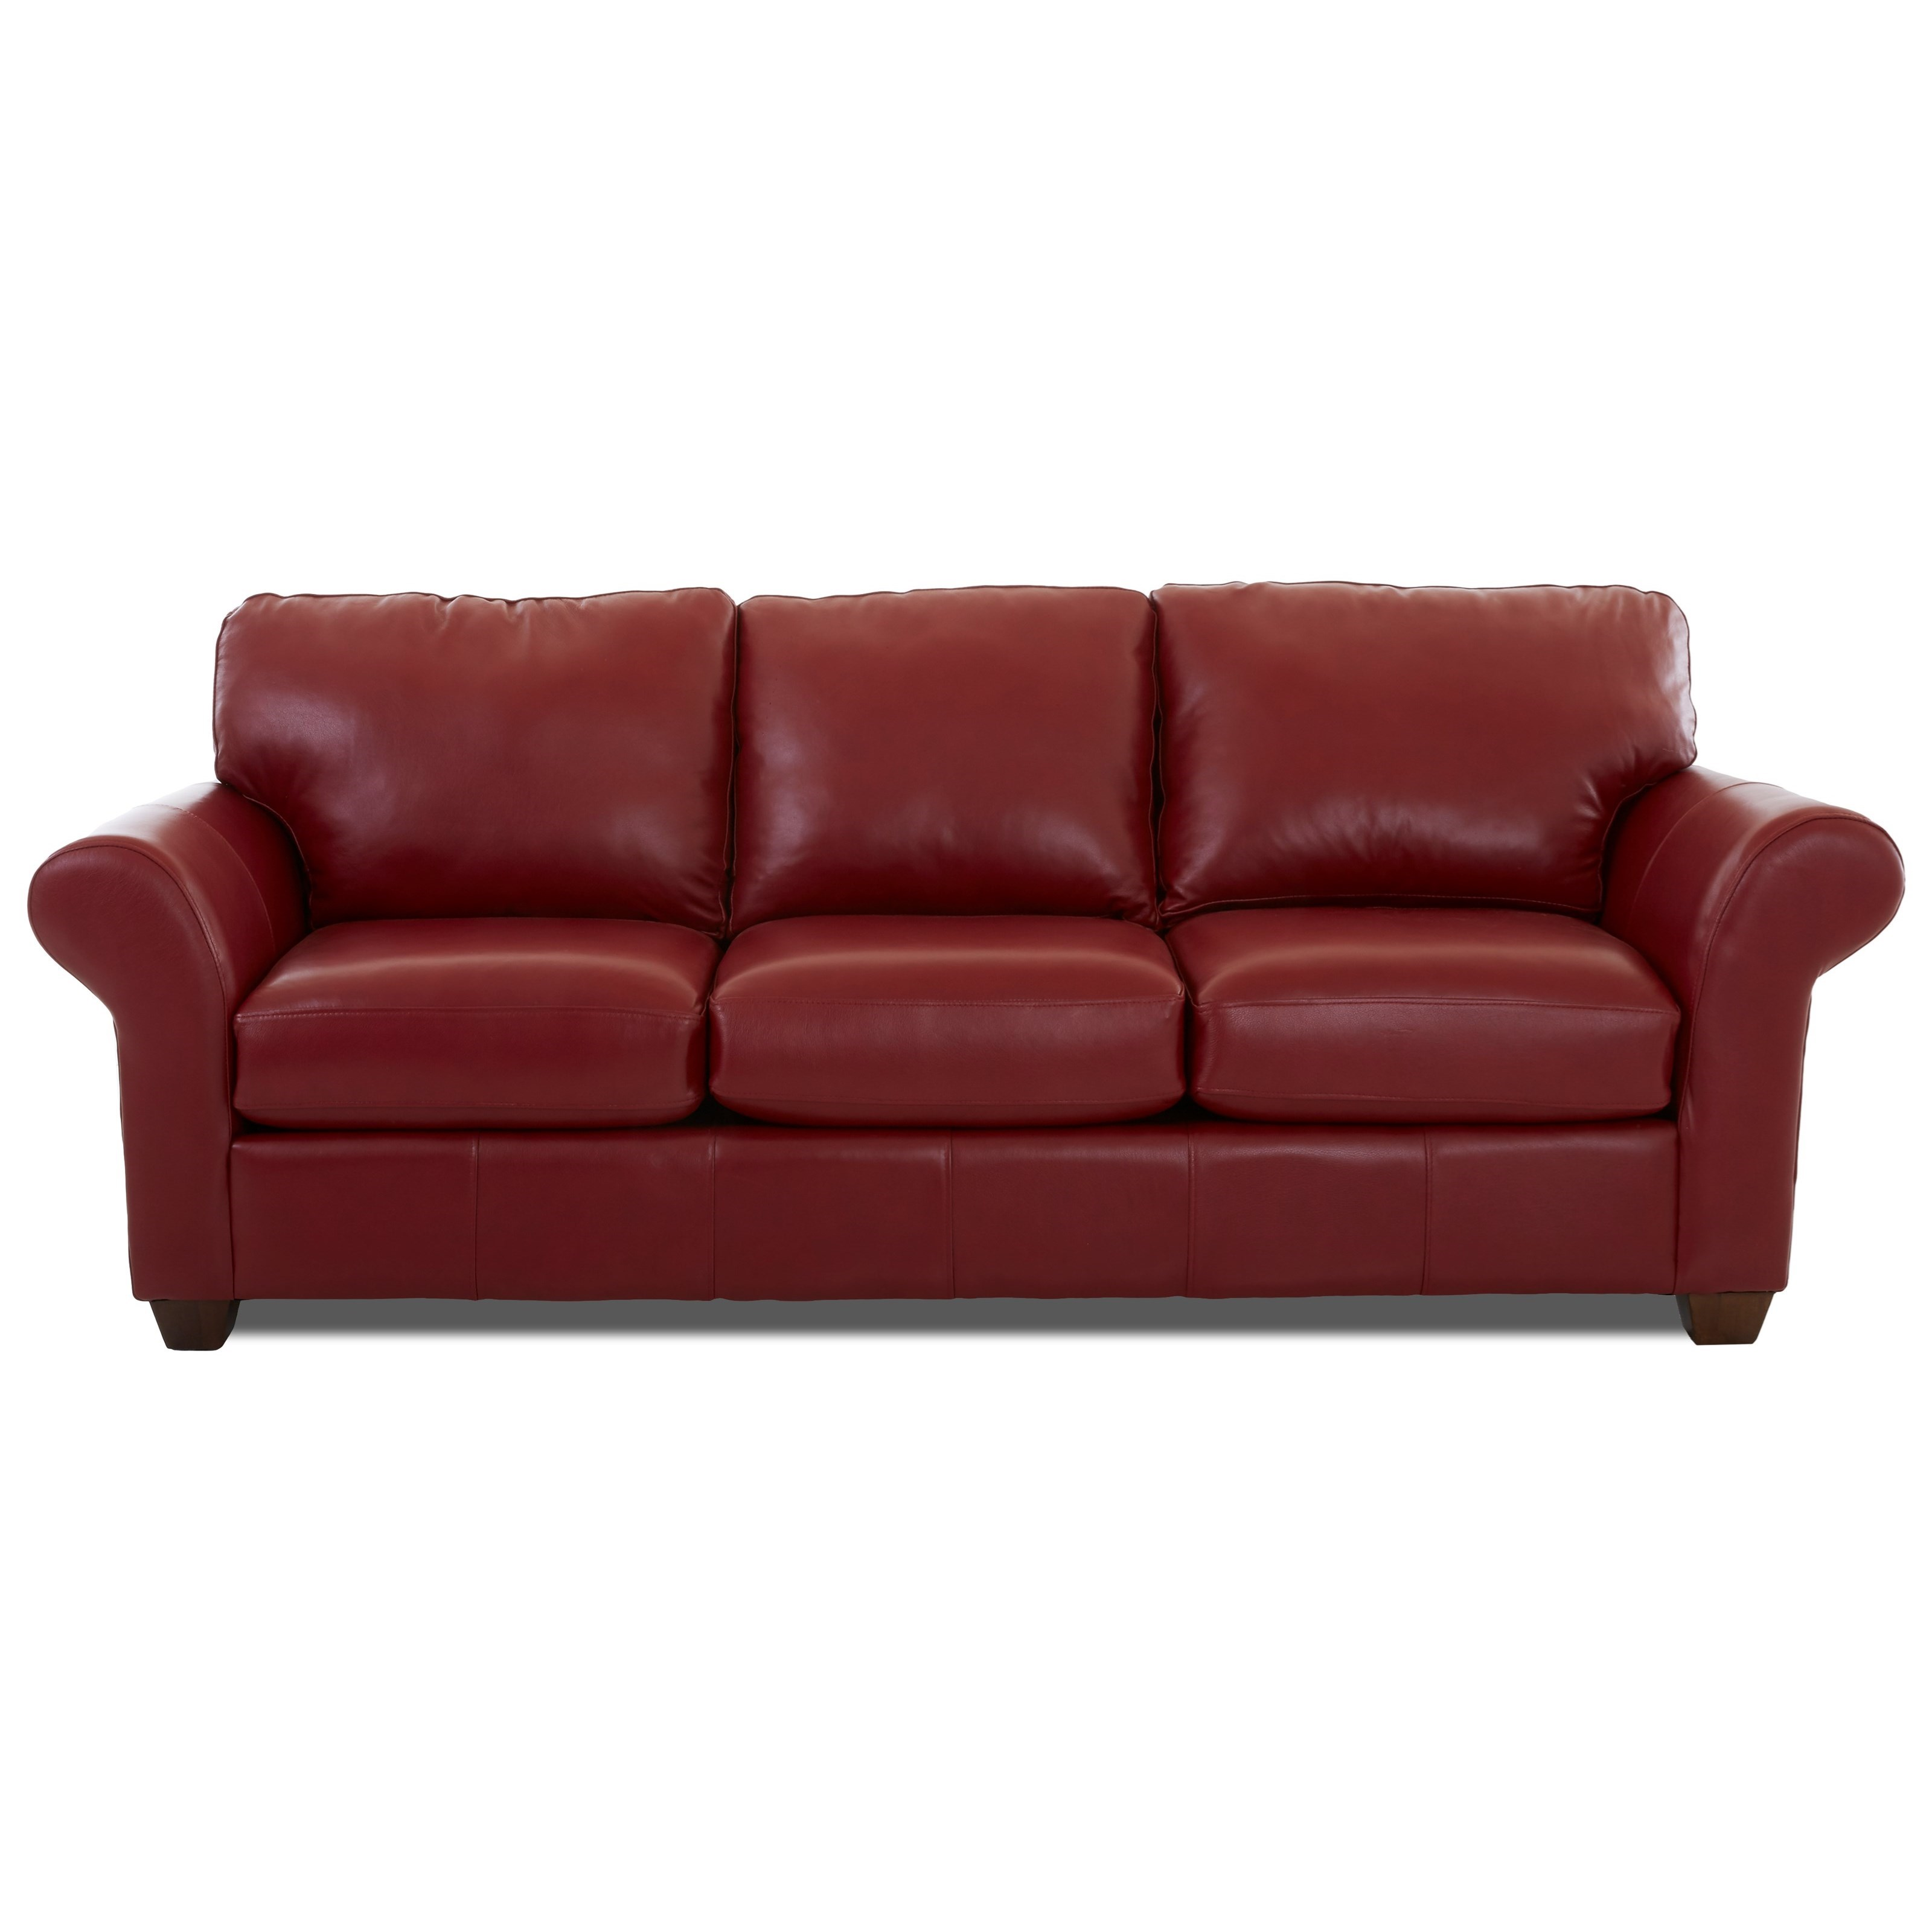 Moorland Sofa  by Klaussner at Northeast Factory Direct